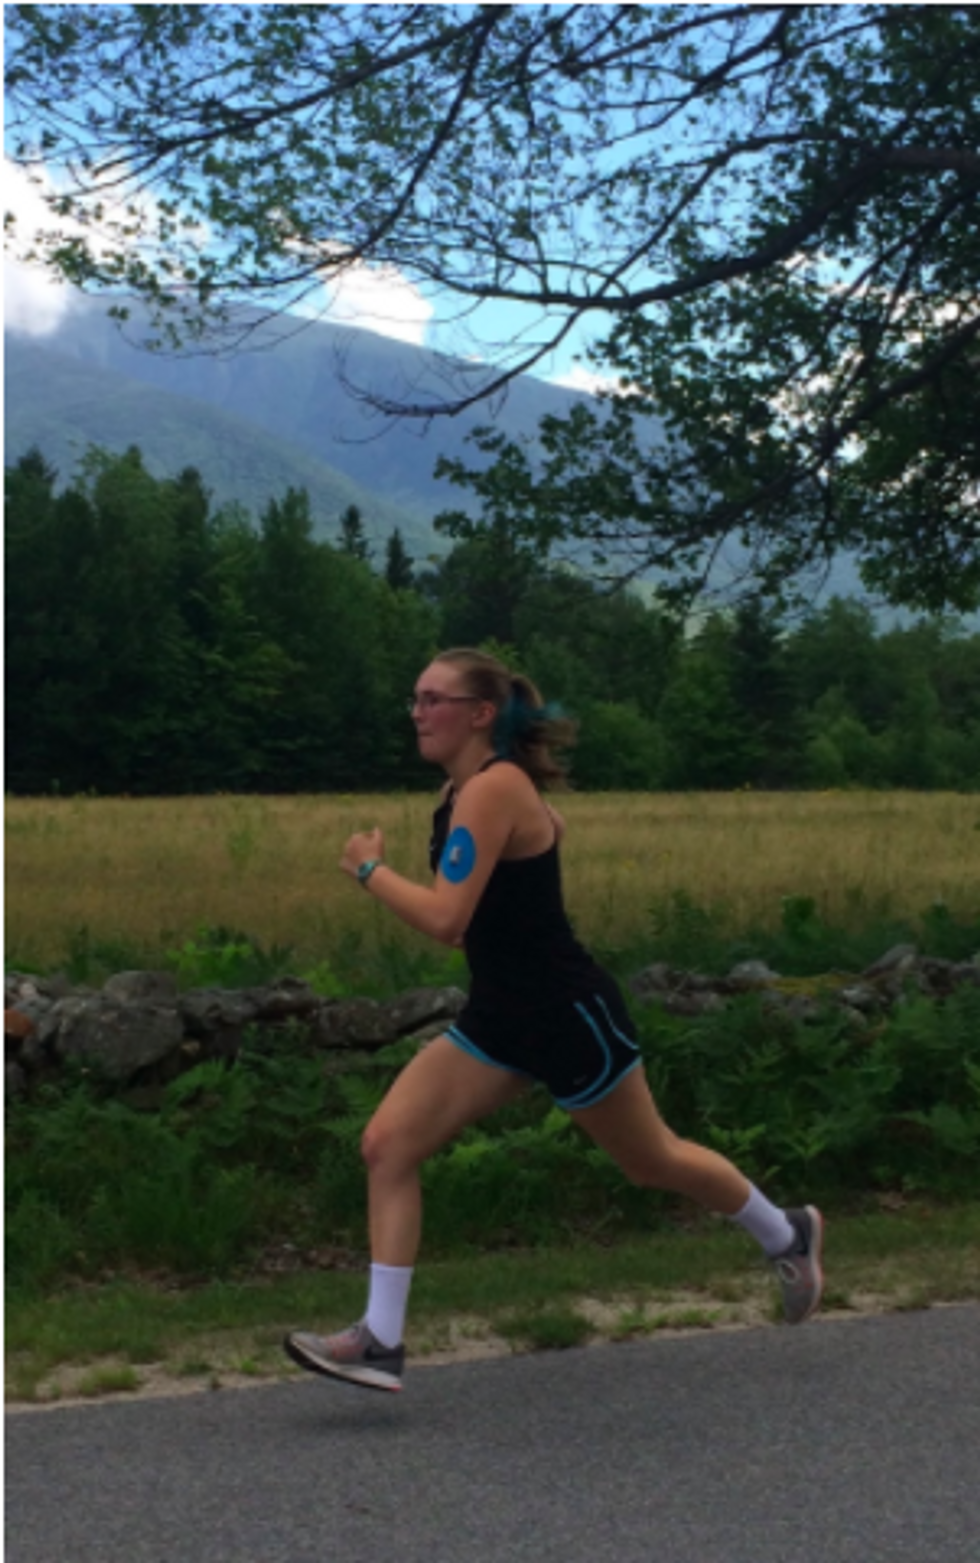 Yes, I Have Type 1 Diabetes, And Yes, I'm Still A Top Athlete